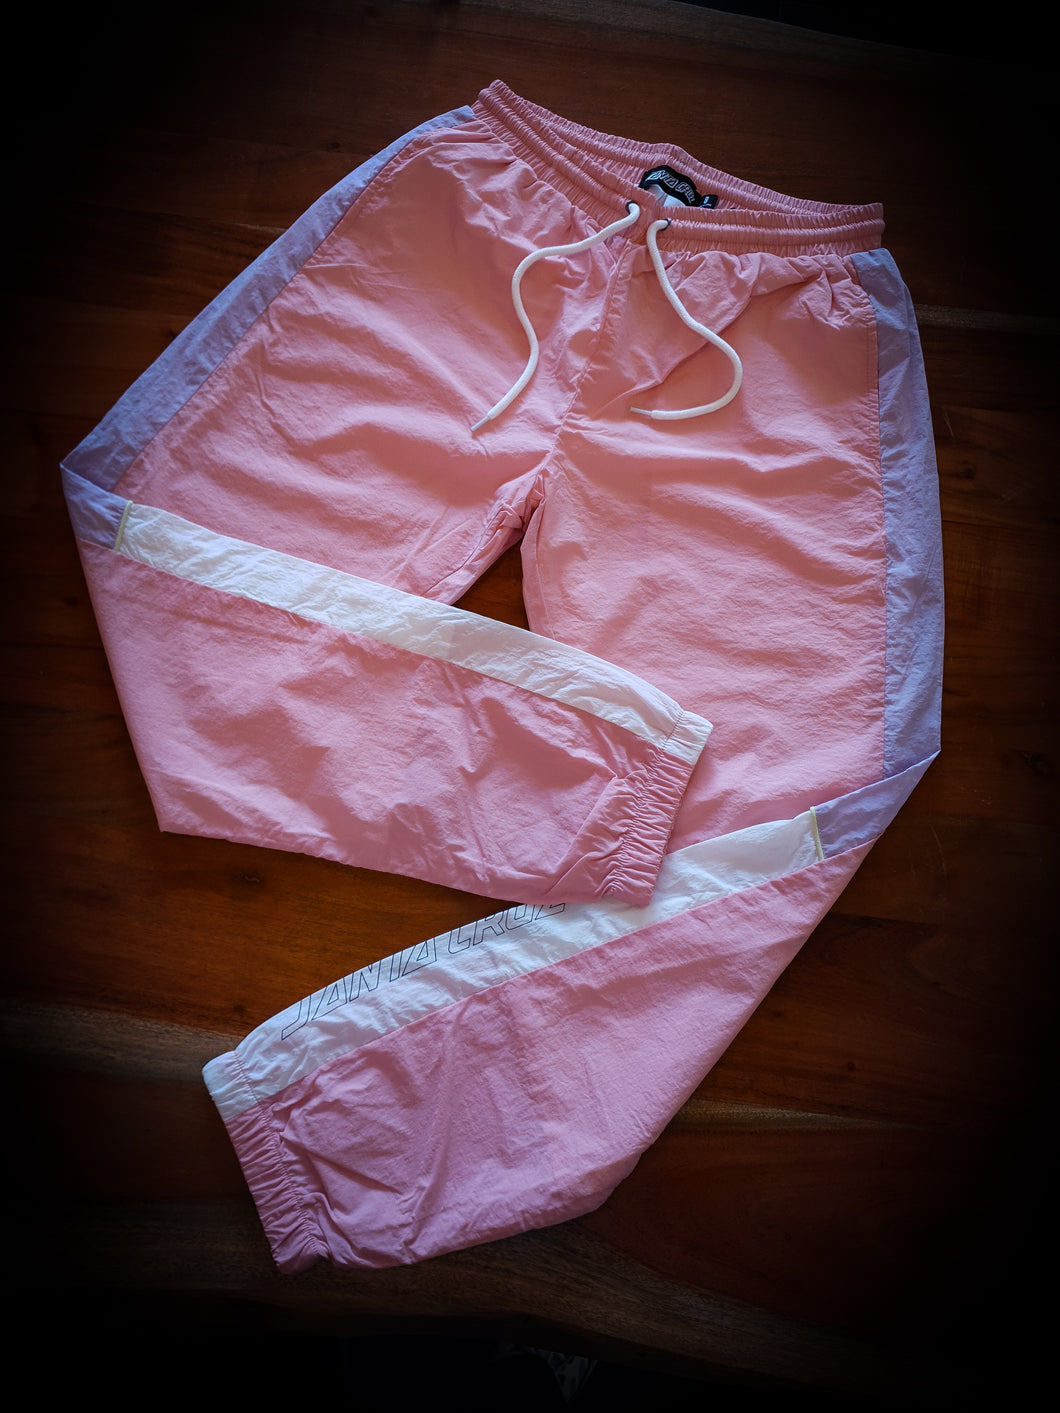 SANTA CRUZ - WOMENS BLOCK PARACHUTE PANTS - PINK